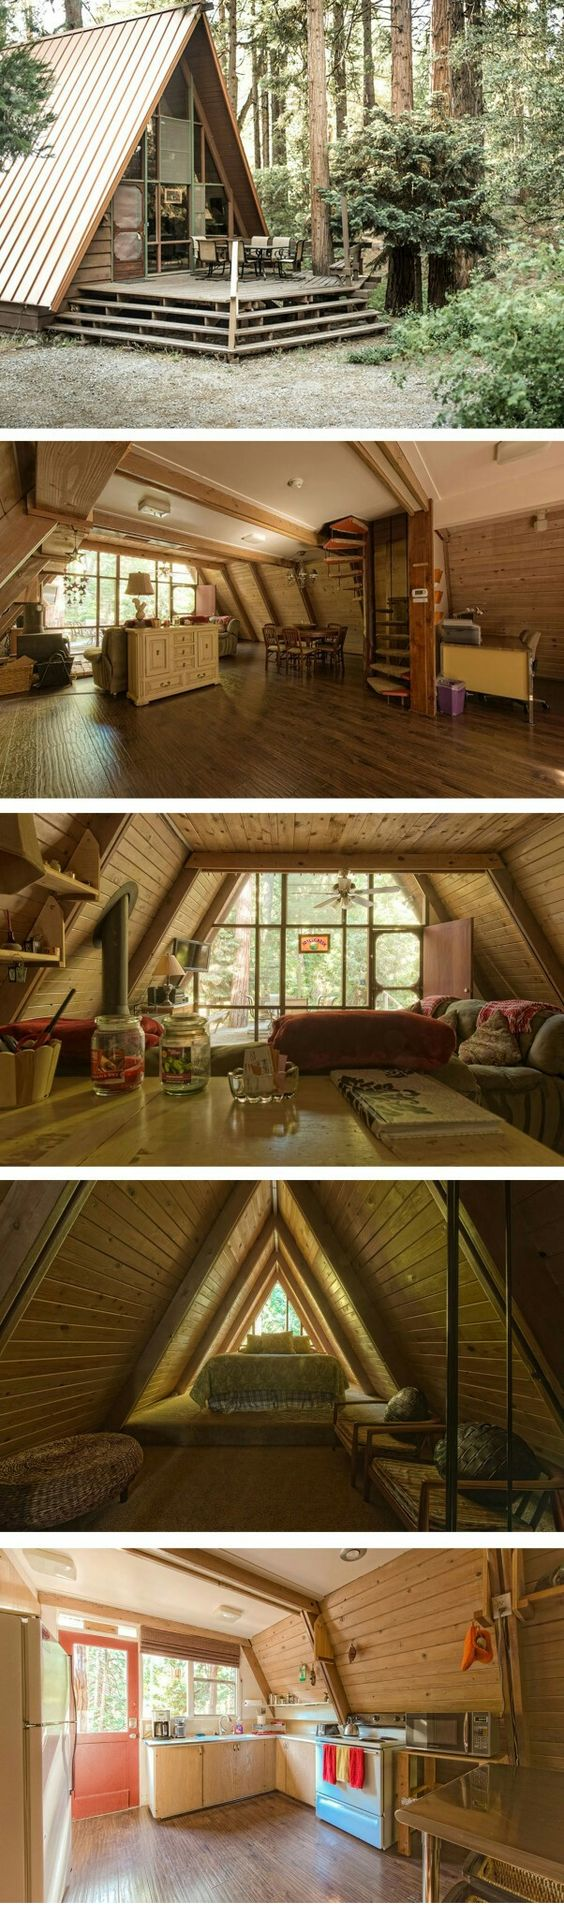 These Houses Actually Inexpensive Barn Sheds | home ideas ...